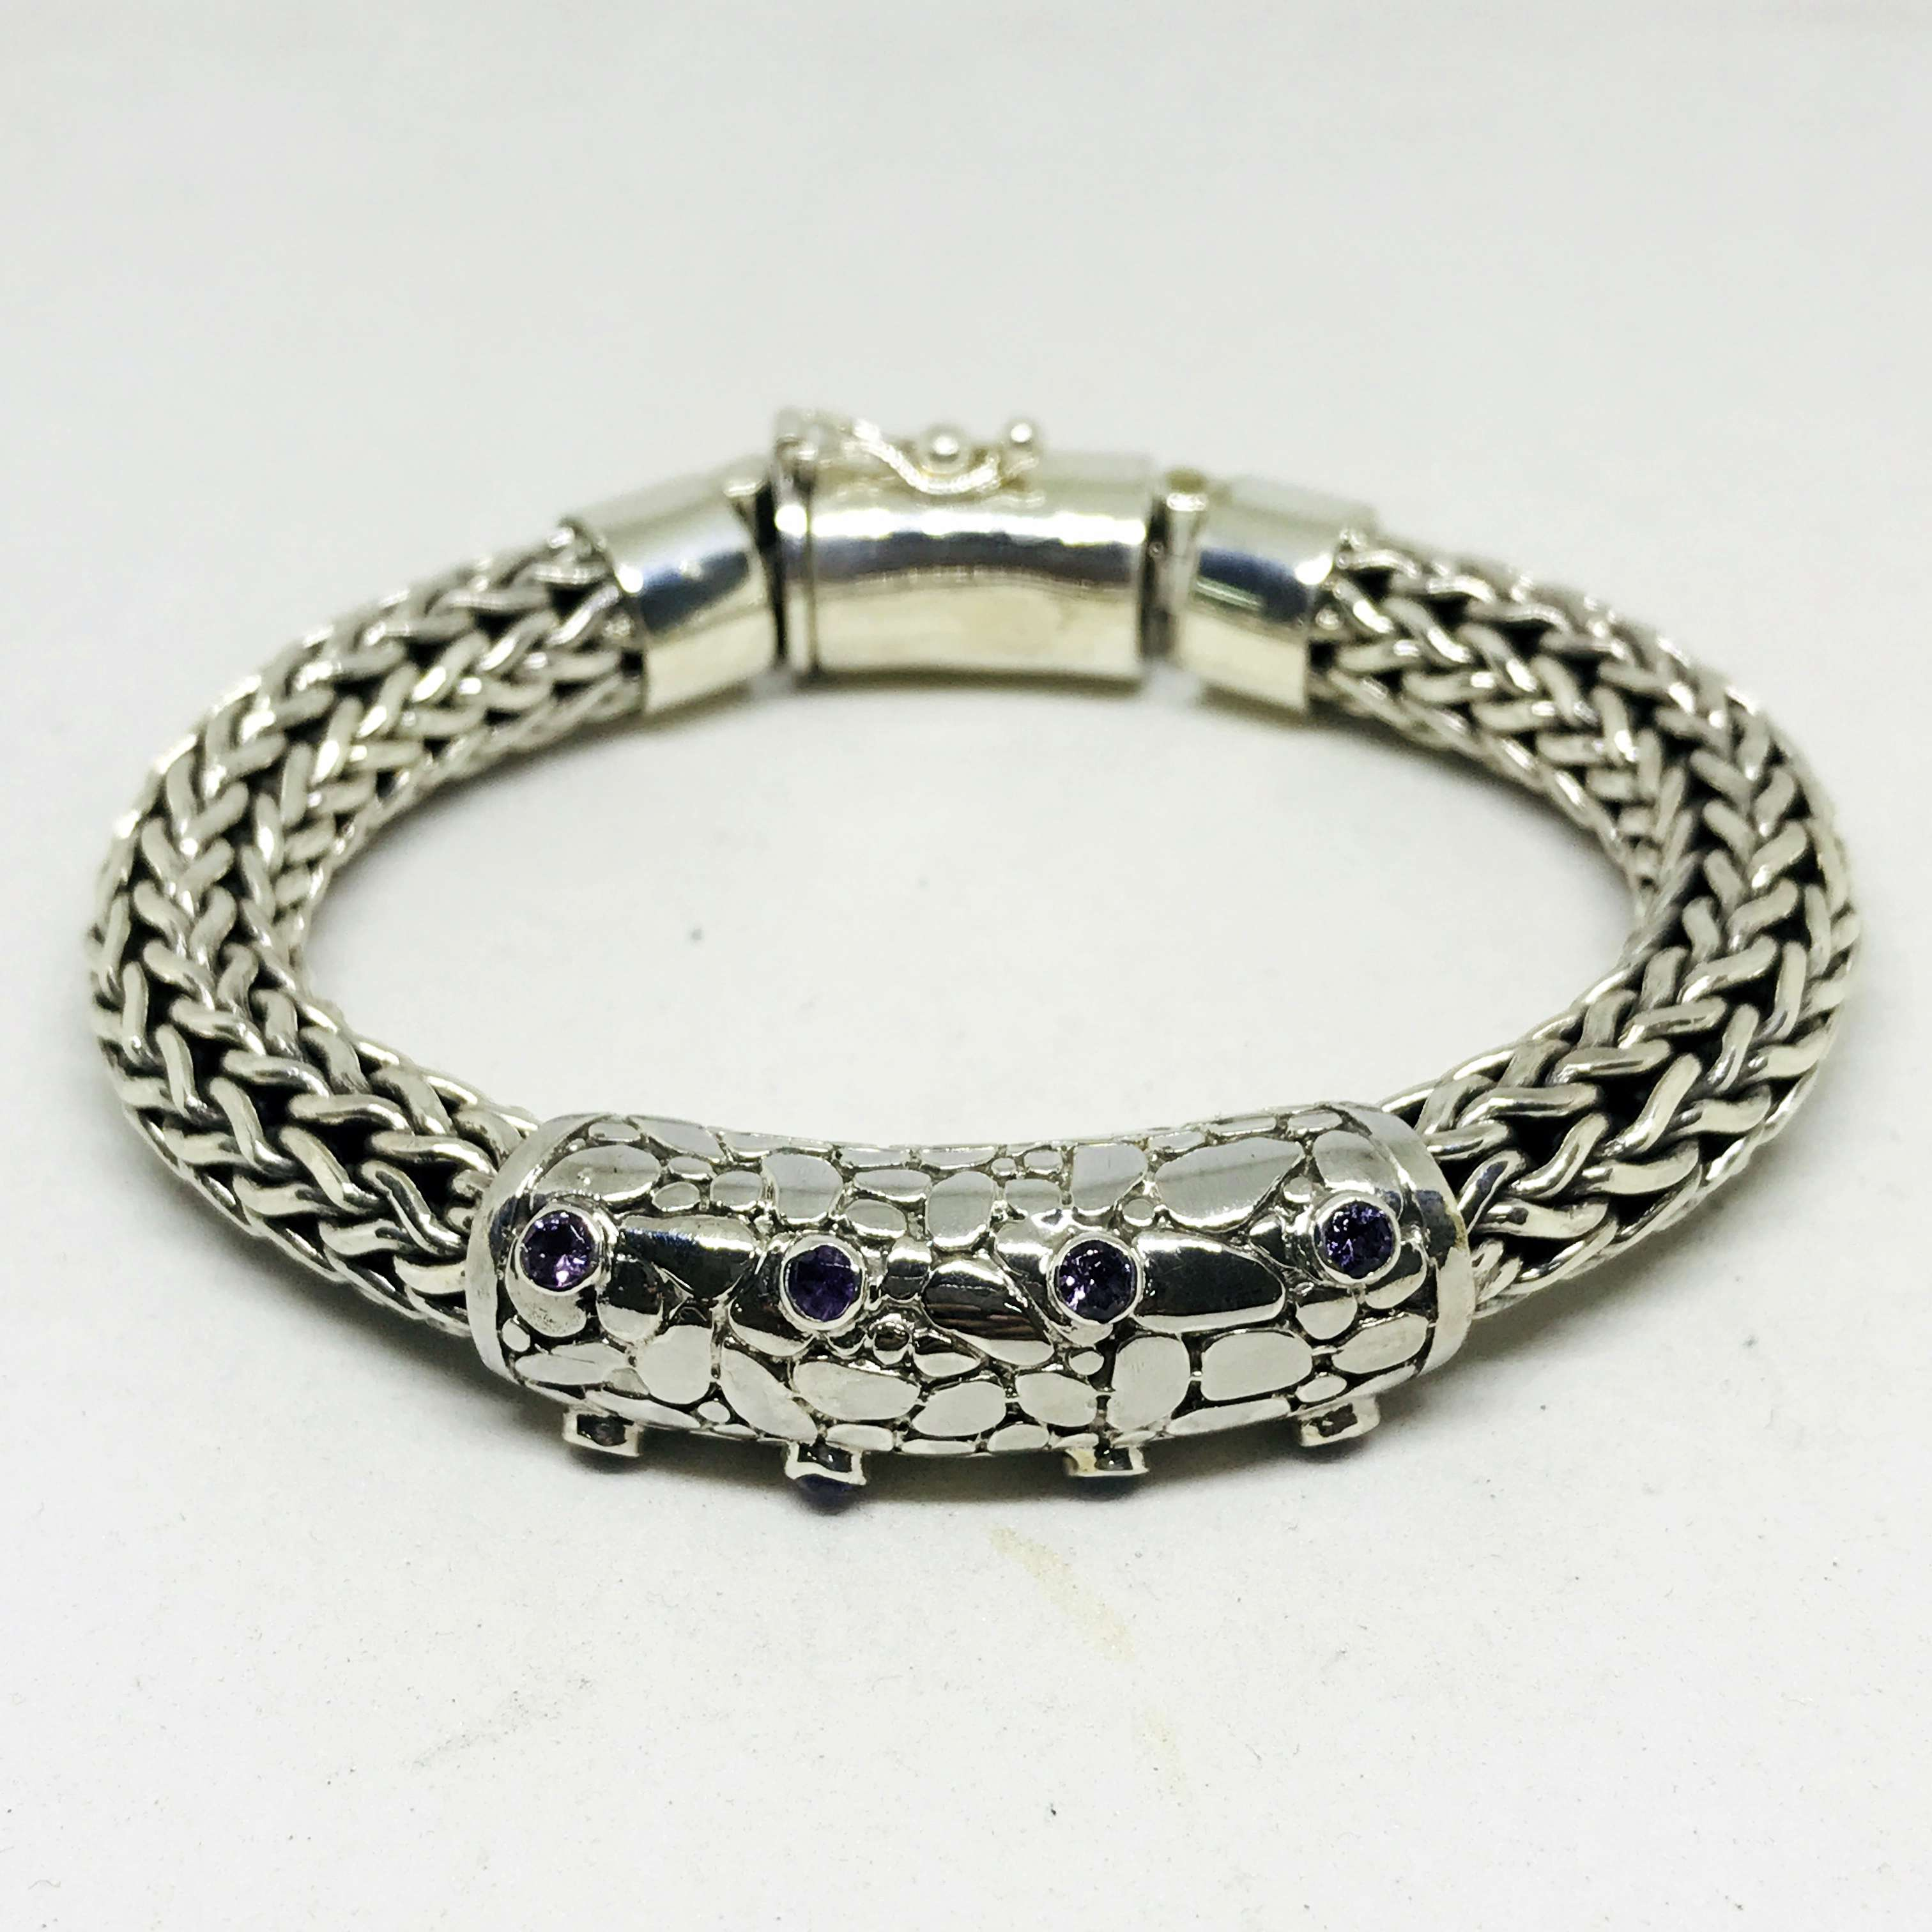 We Produce And Wholesale Handcrafted Bali Silver Beads And Jewelry